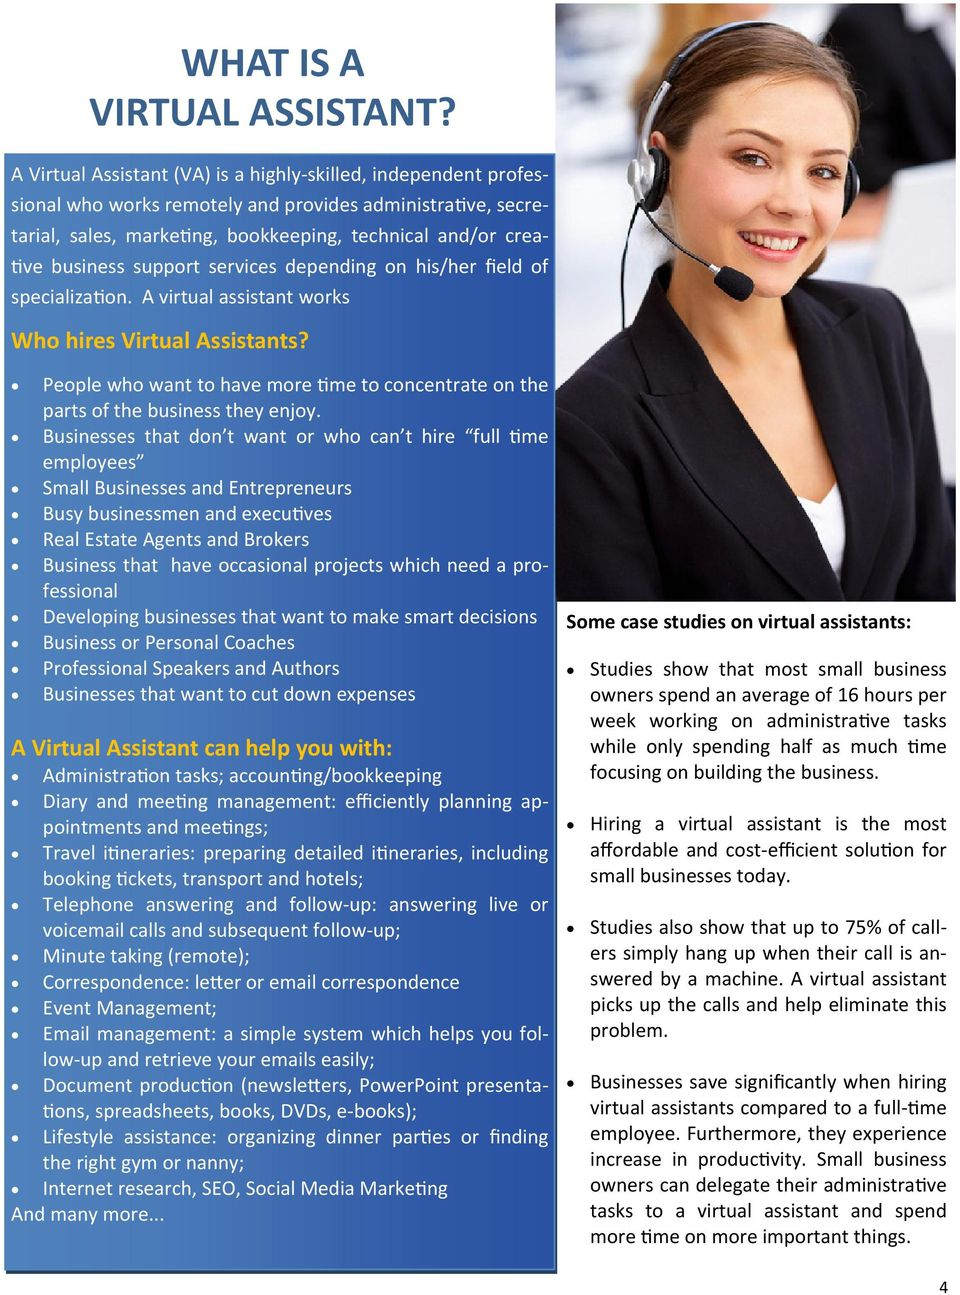 support services depending on his/her field of specializa on. A virtual assistant works Who hires Virtual Assistants?